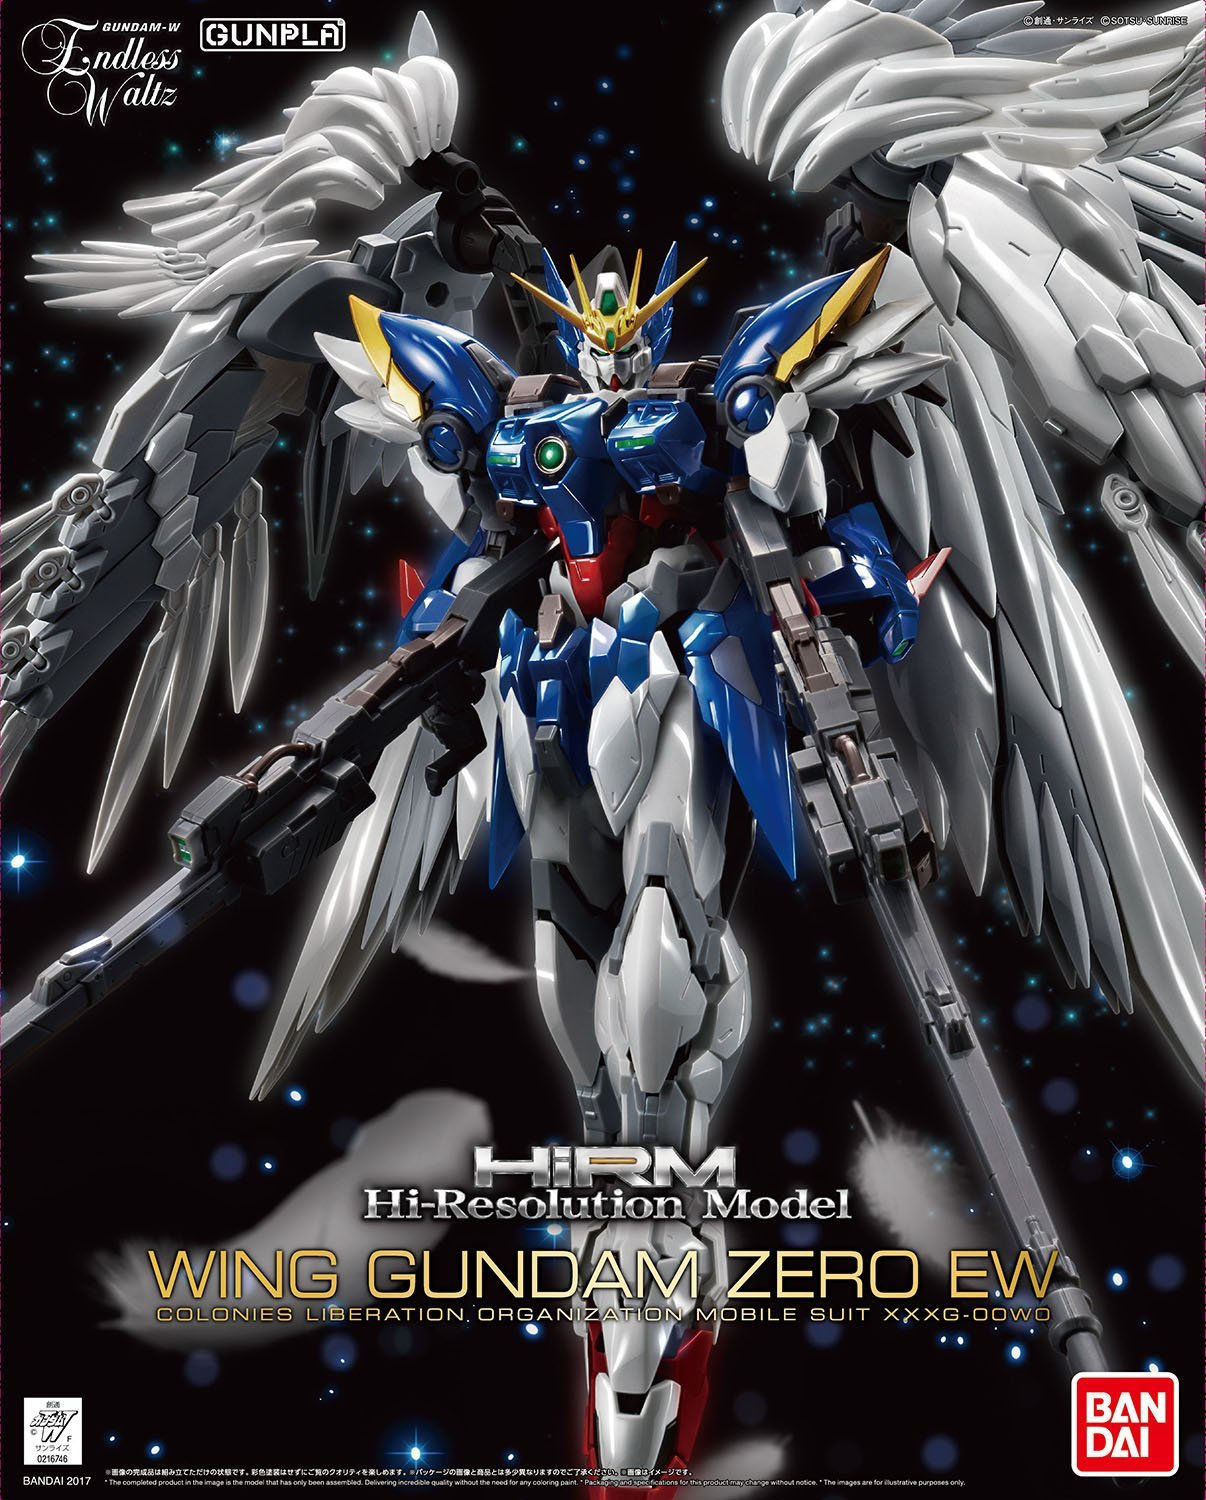 10+ Wing Gundam Zero Bird You Never Seen Before